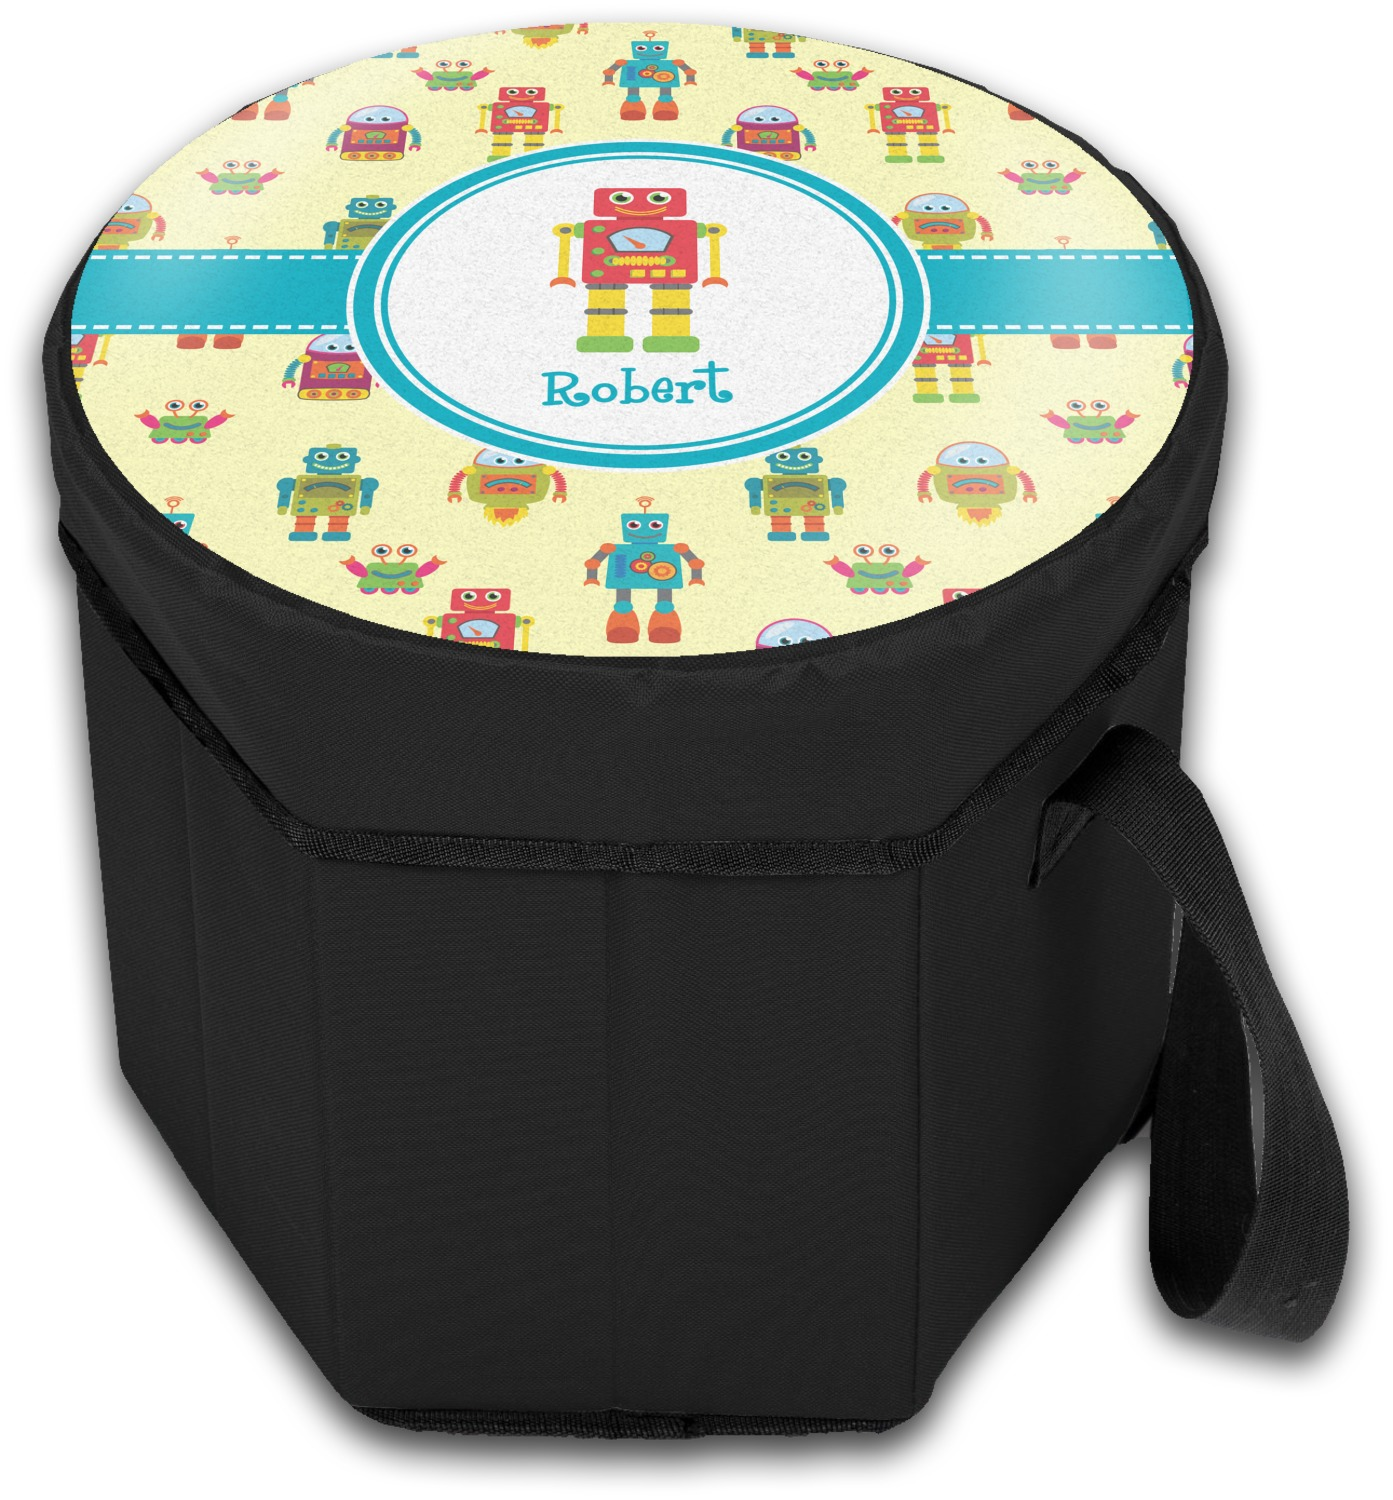 Robot Collapsible Cooler Amp Seat Personalized